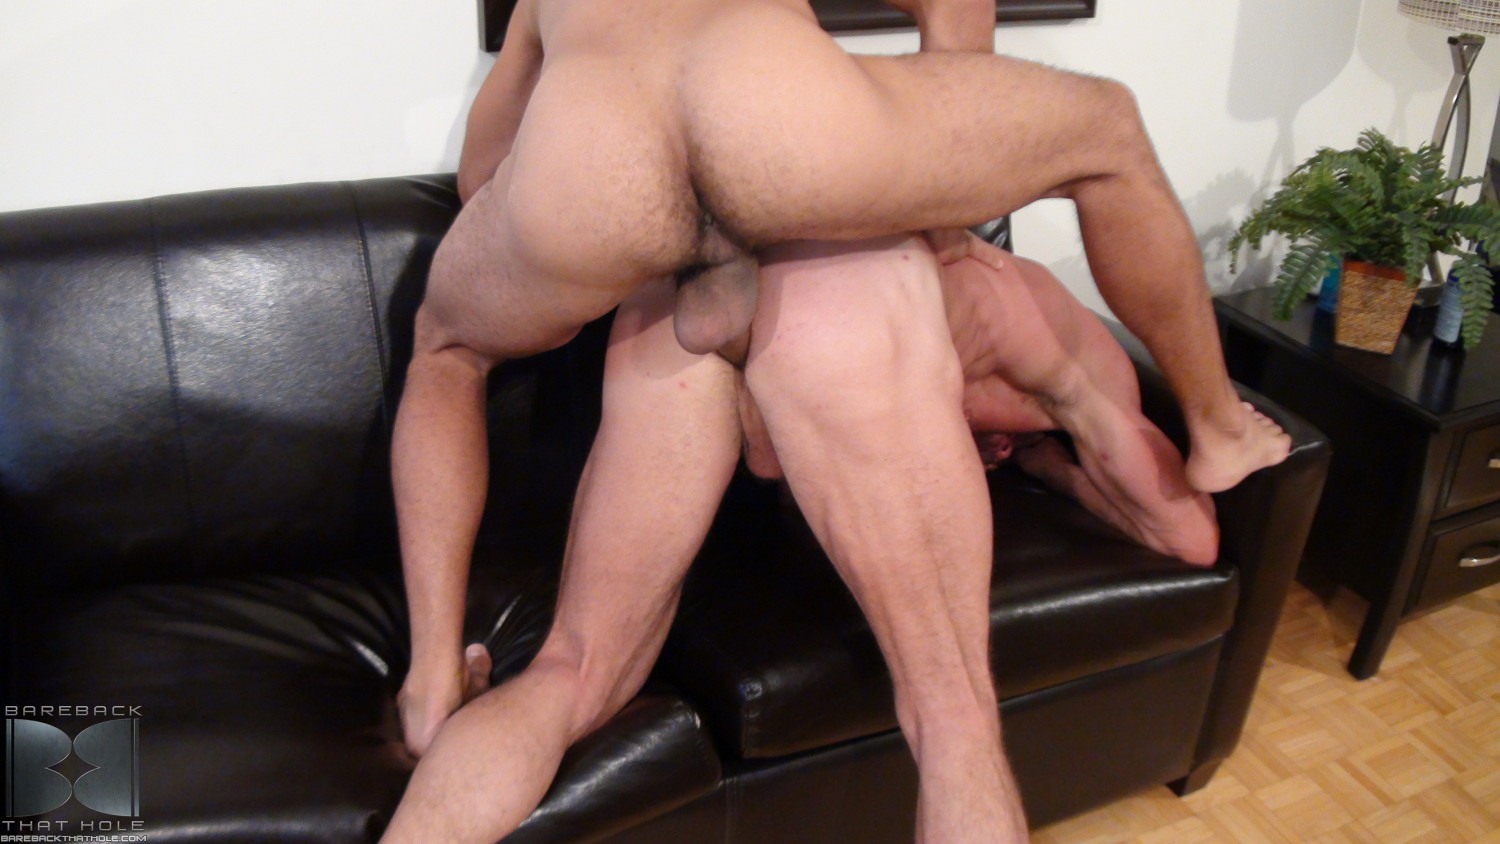 BareBackThatHole Antonio Biaggi and Jake Norris torrent bareback 14 Huge Latino Cock Barebacks a Hot Muscle Daddy